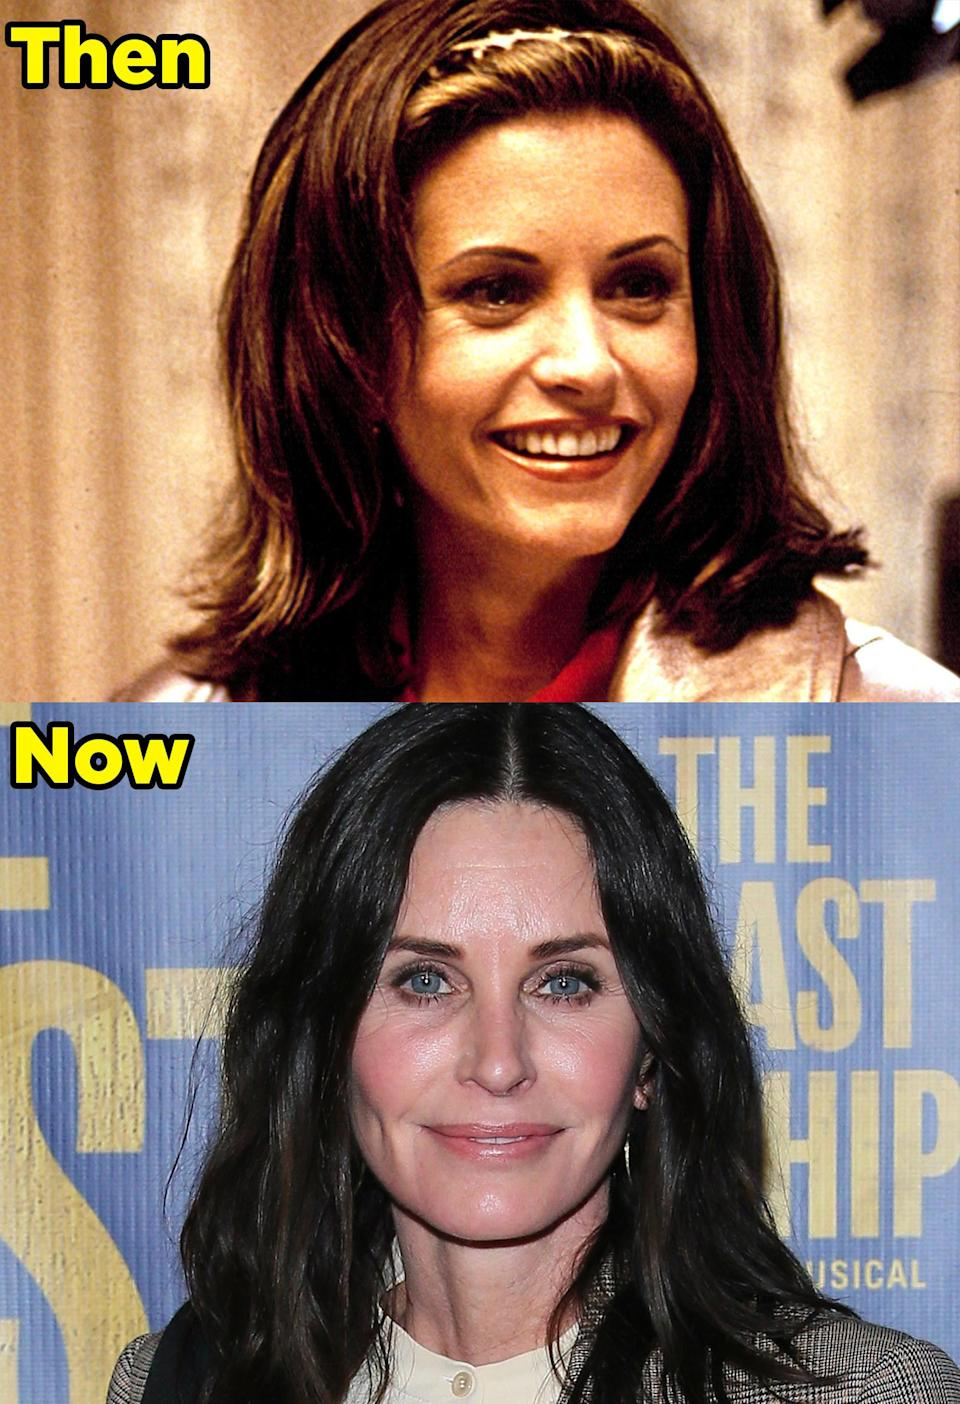 What she's up to now: Courteney is best known for her roles on Friends, Dirt, Family Ties, and Cougar Town. She continued acting a bunch, started directing, and began a production company with her ex-husband, David Arquette. Most recently, she appeared in HBO's Friends: The Reunion, a special that won an Emmy award for Outstanding Variety Special. She's also set to executive produce and star in an adaptation of the docuseries Last Chance U and will be starring in a new Starz series called Shining Vale. Plus, she will be returning for the fifth installment in the Scream franchise.